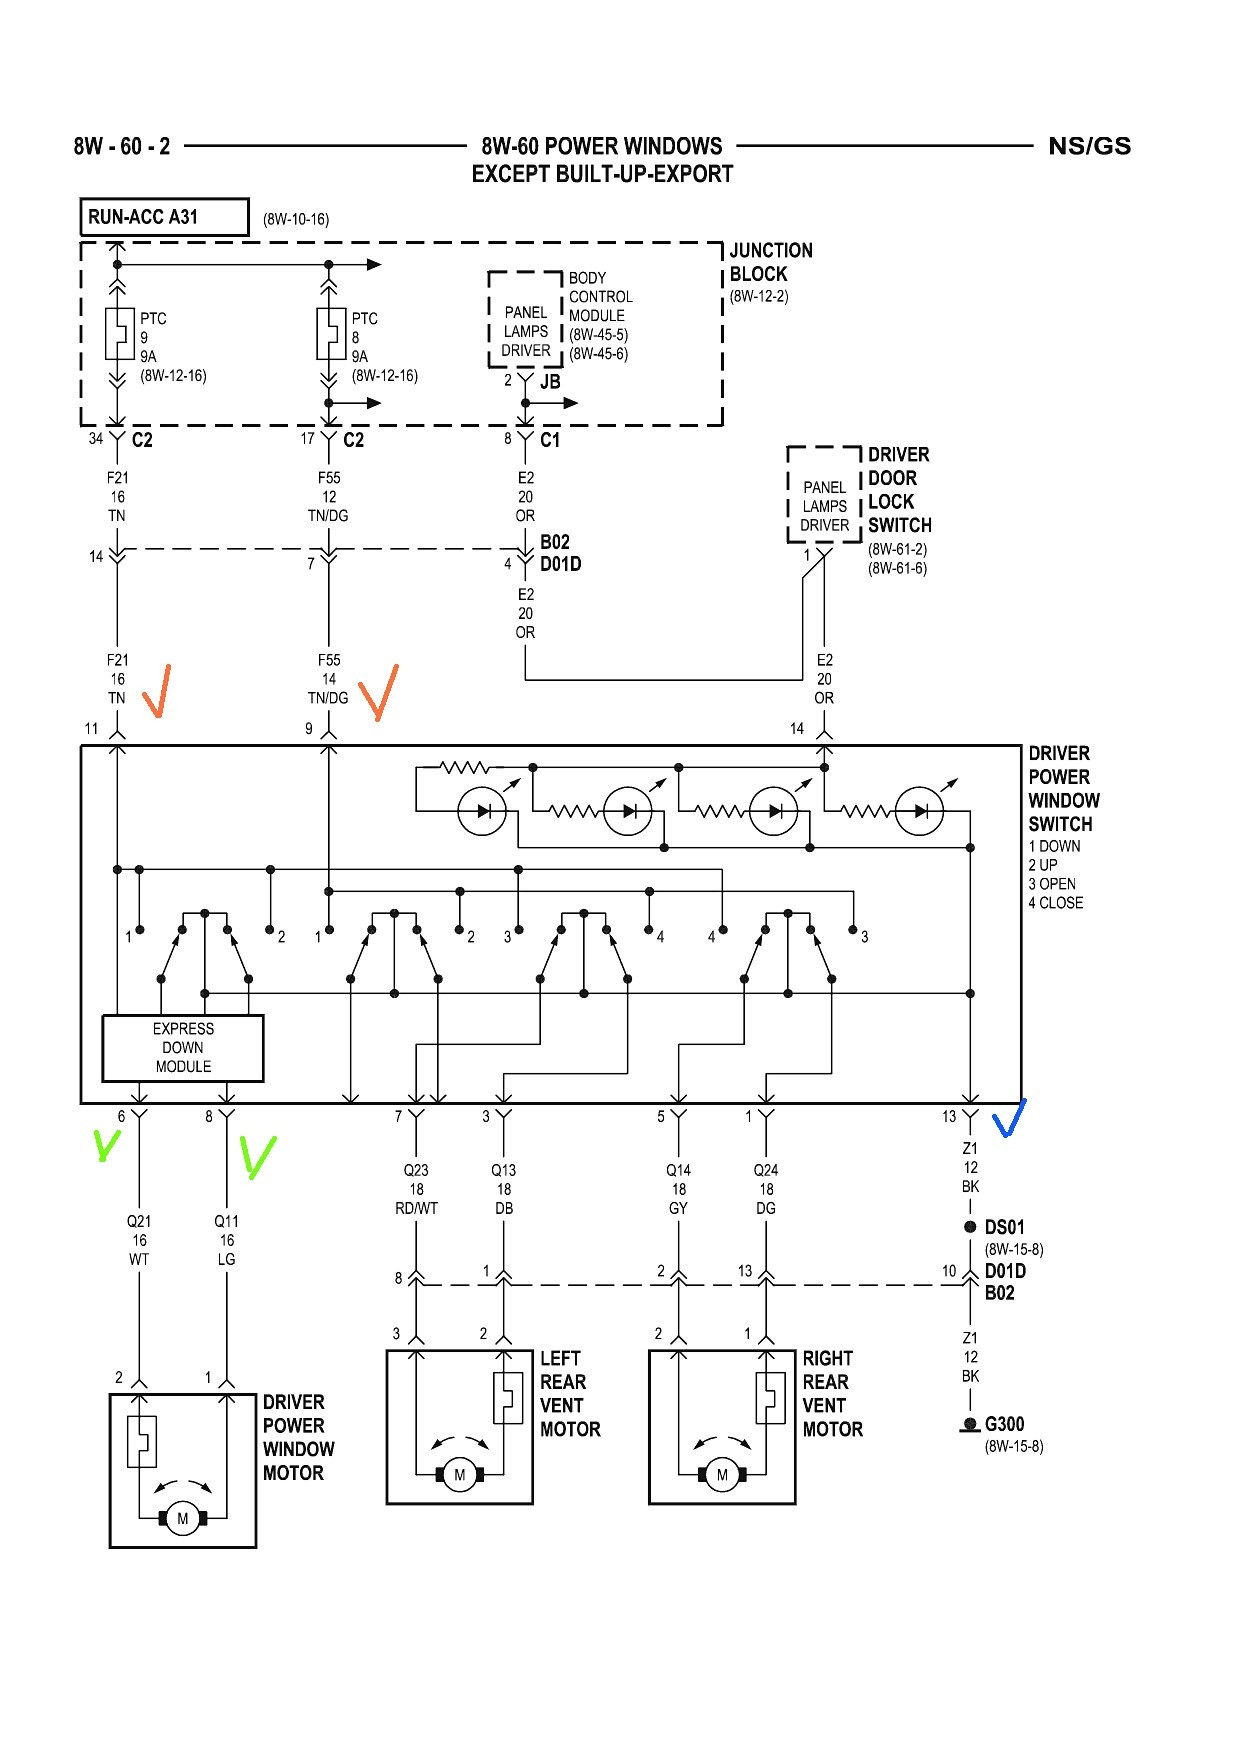 daikin mini split wiring diagram - wiring diagram ac split daikin inverter  valid wiring diagram heating